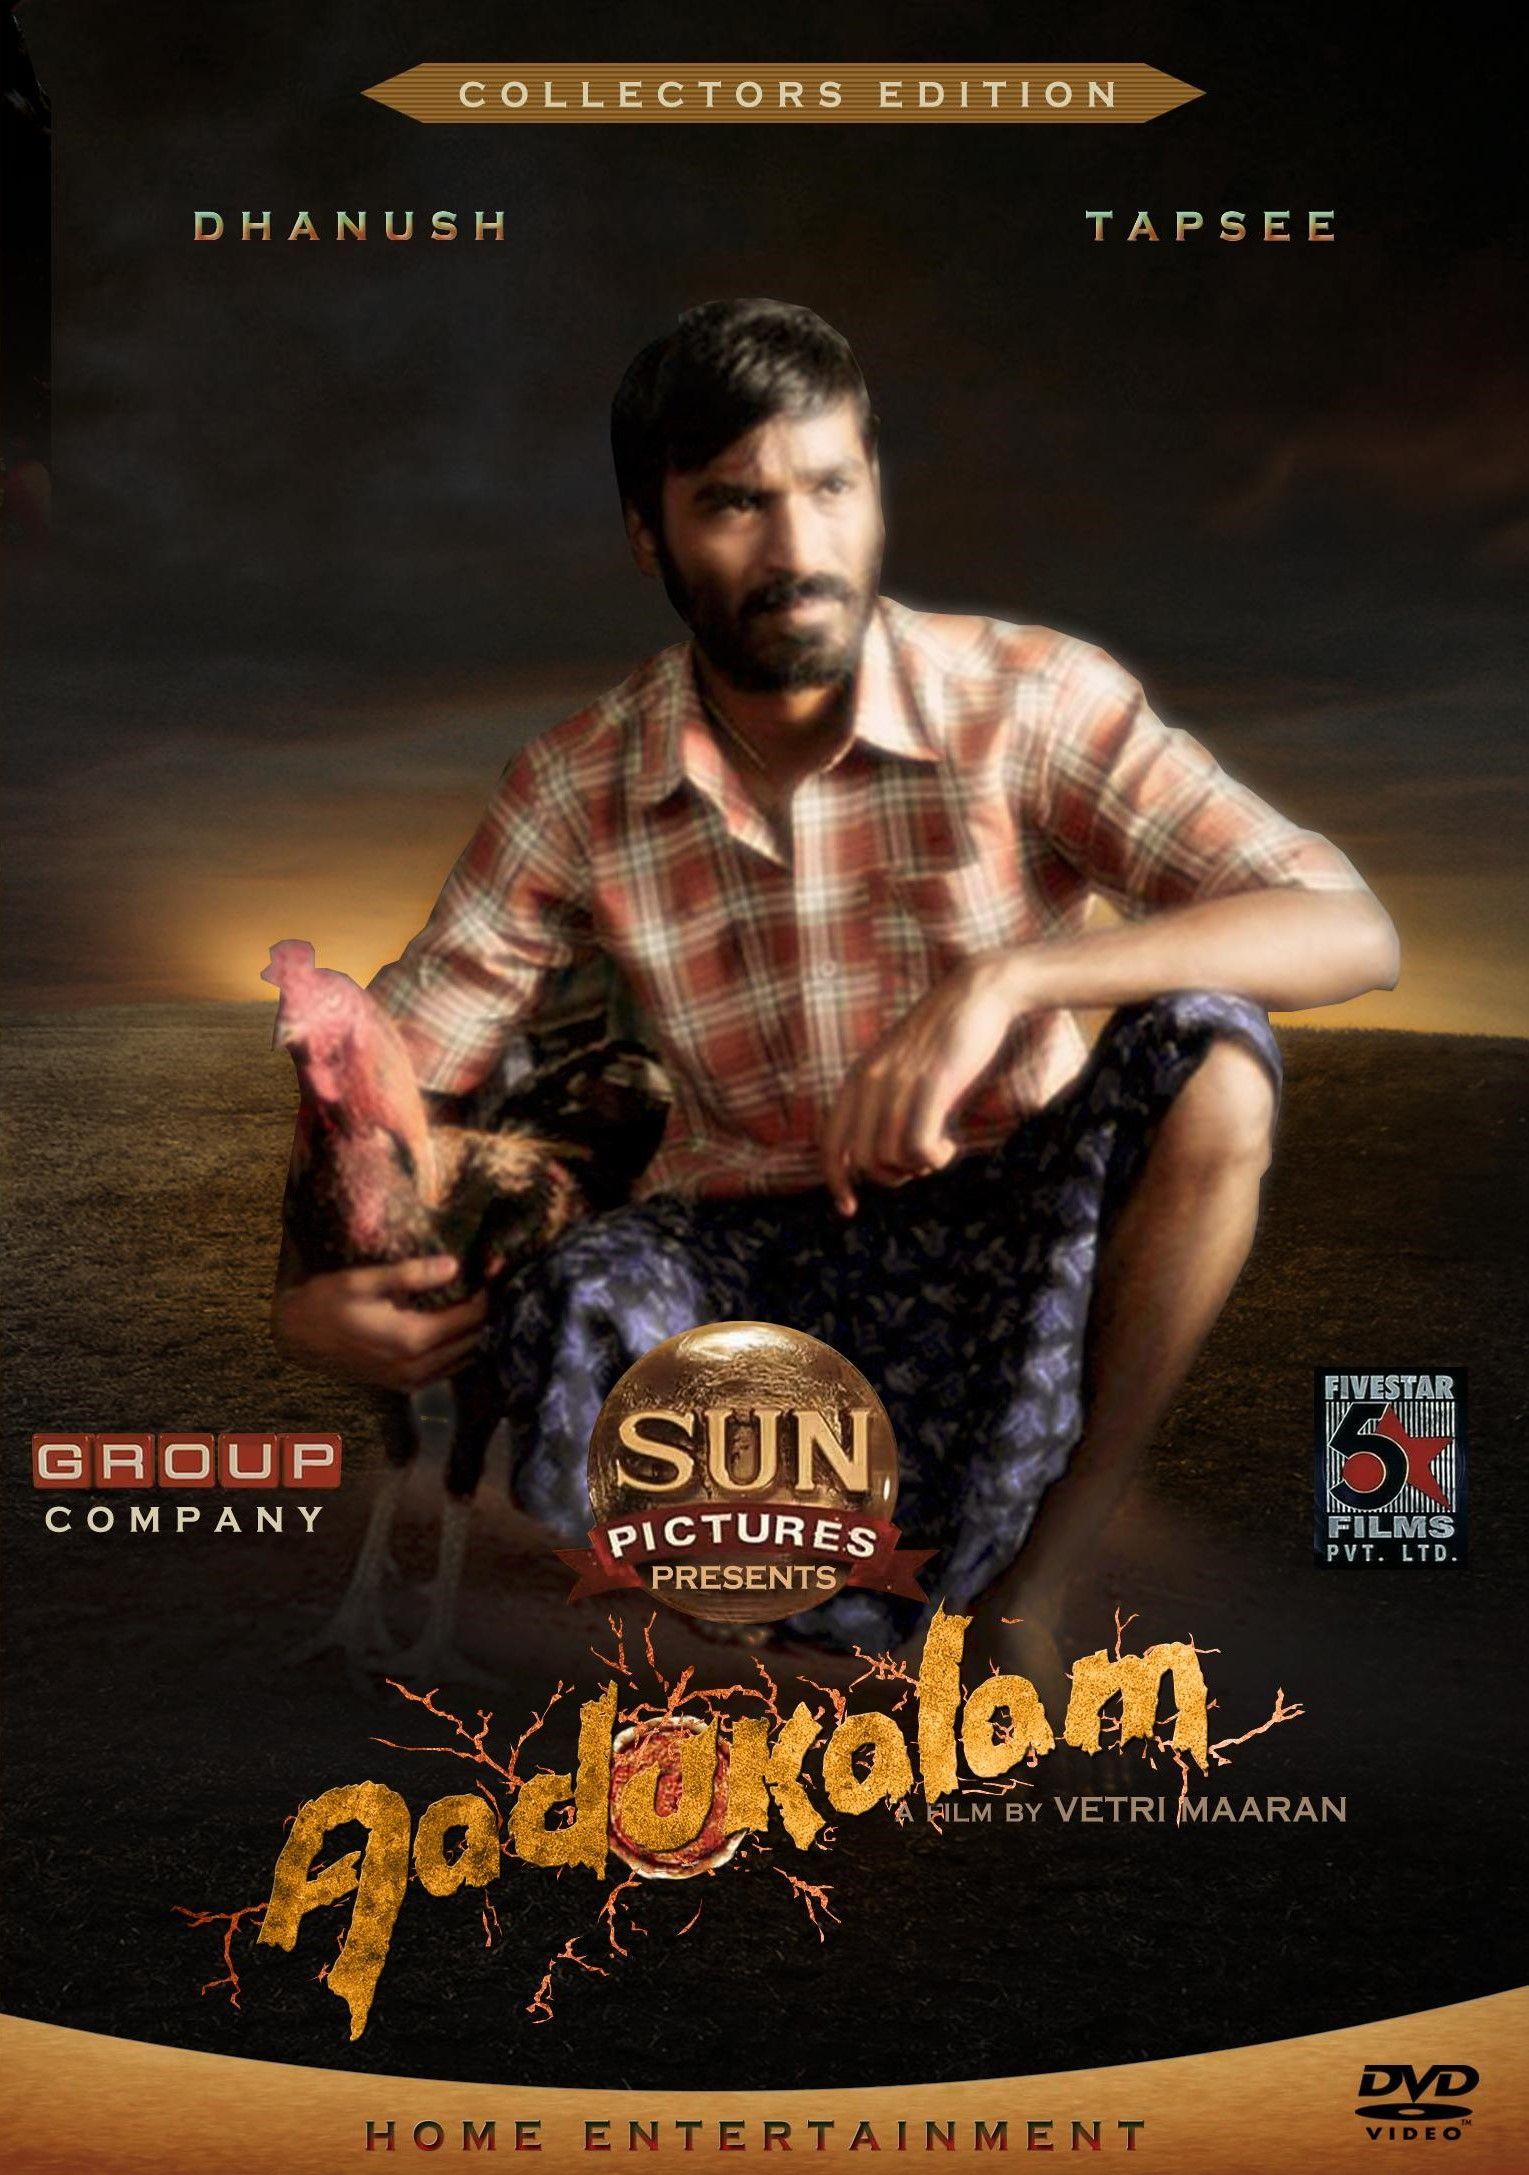 Aadukalam 2011 Tamil Movie Online In Hd Einthusan Dhanush Taapseepannu Directed By Vetrimaran Music By G Tamil Movies Online Full Movies Thriller Movies